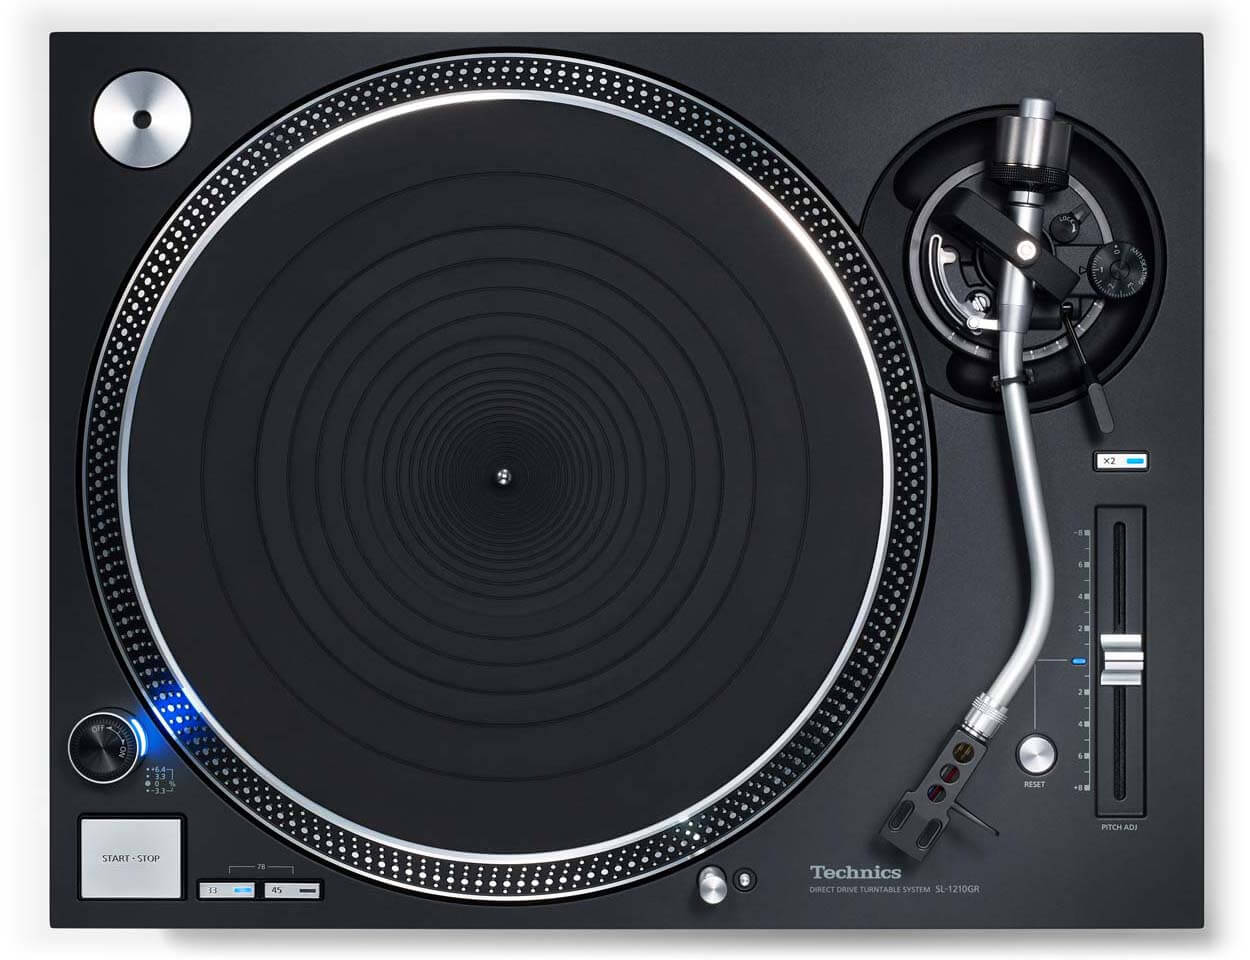 Technics SL 1210 GR Turntable